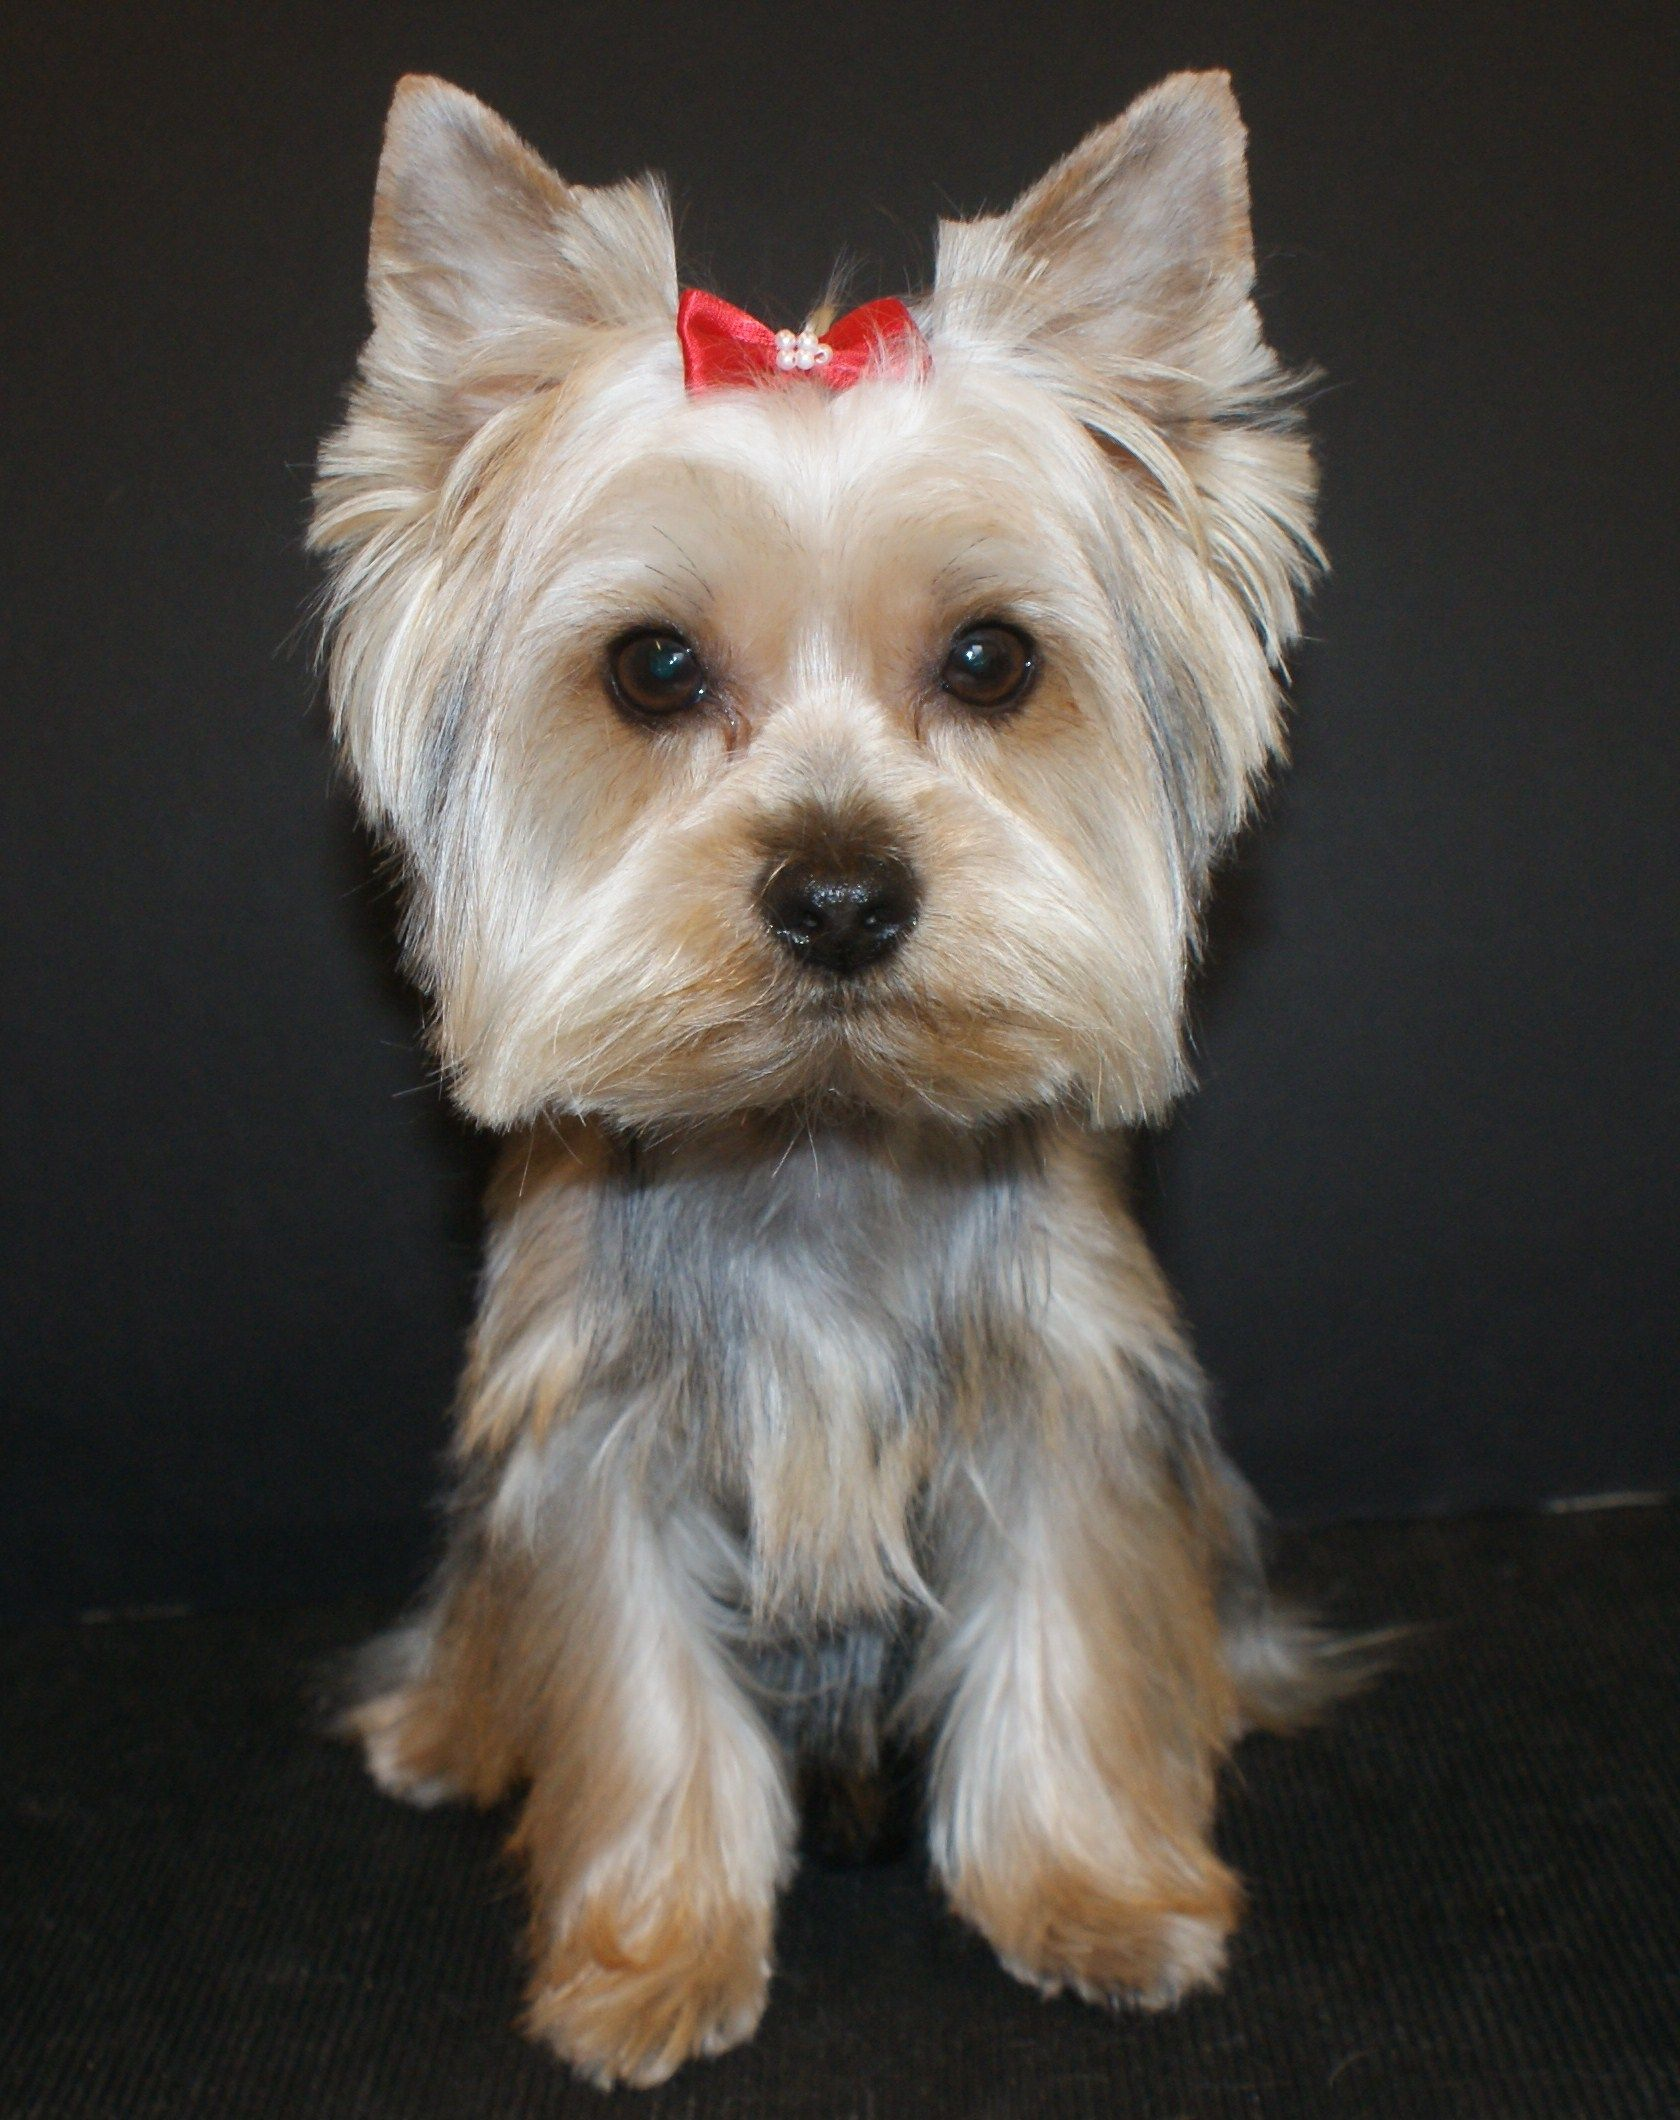 dog grooming yorkshire terrier -- visit the image link for more